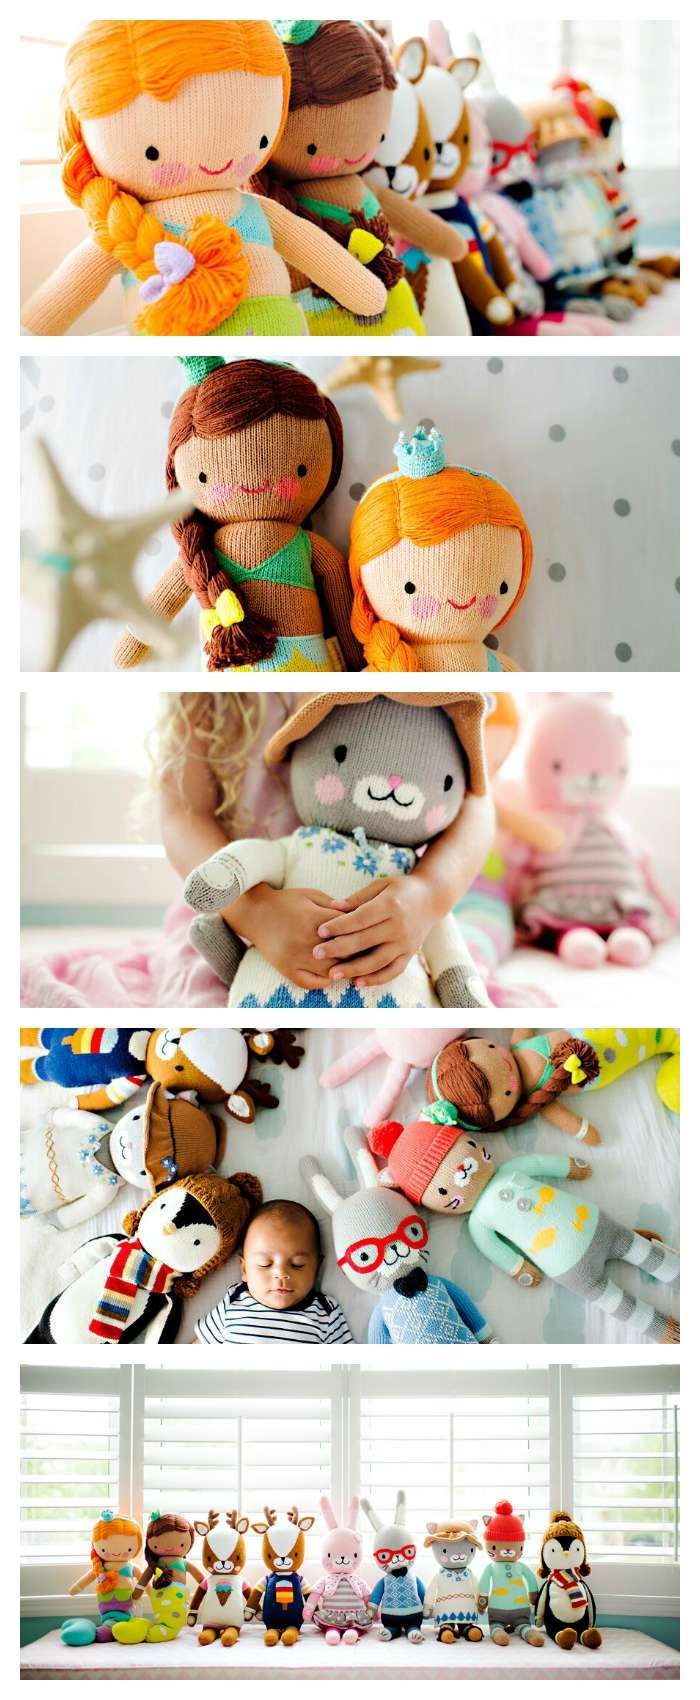 These adorable handmade dolls make an amazing gift for little boys or little girls - and every doll provides 10 meals for hungry kids. Awesome way to give a gift and give back at the same time. My kids are obsessed with these dolls. Such a great gift idea. LOVE